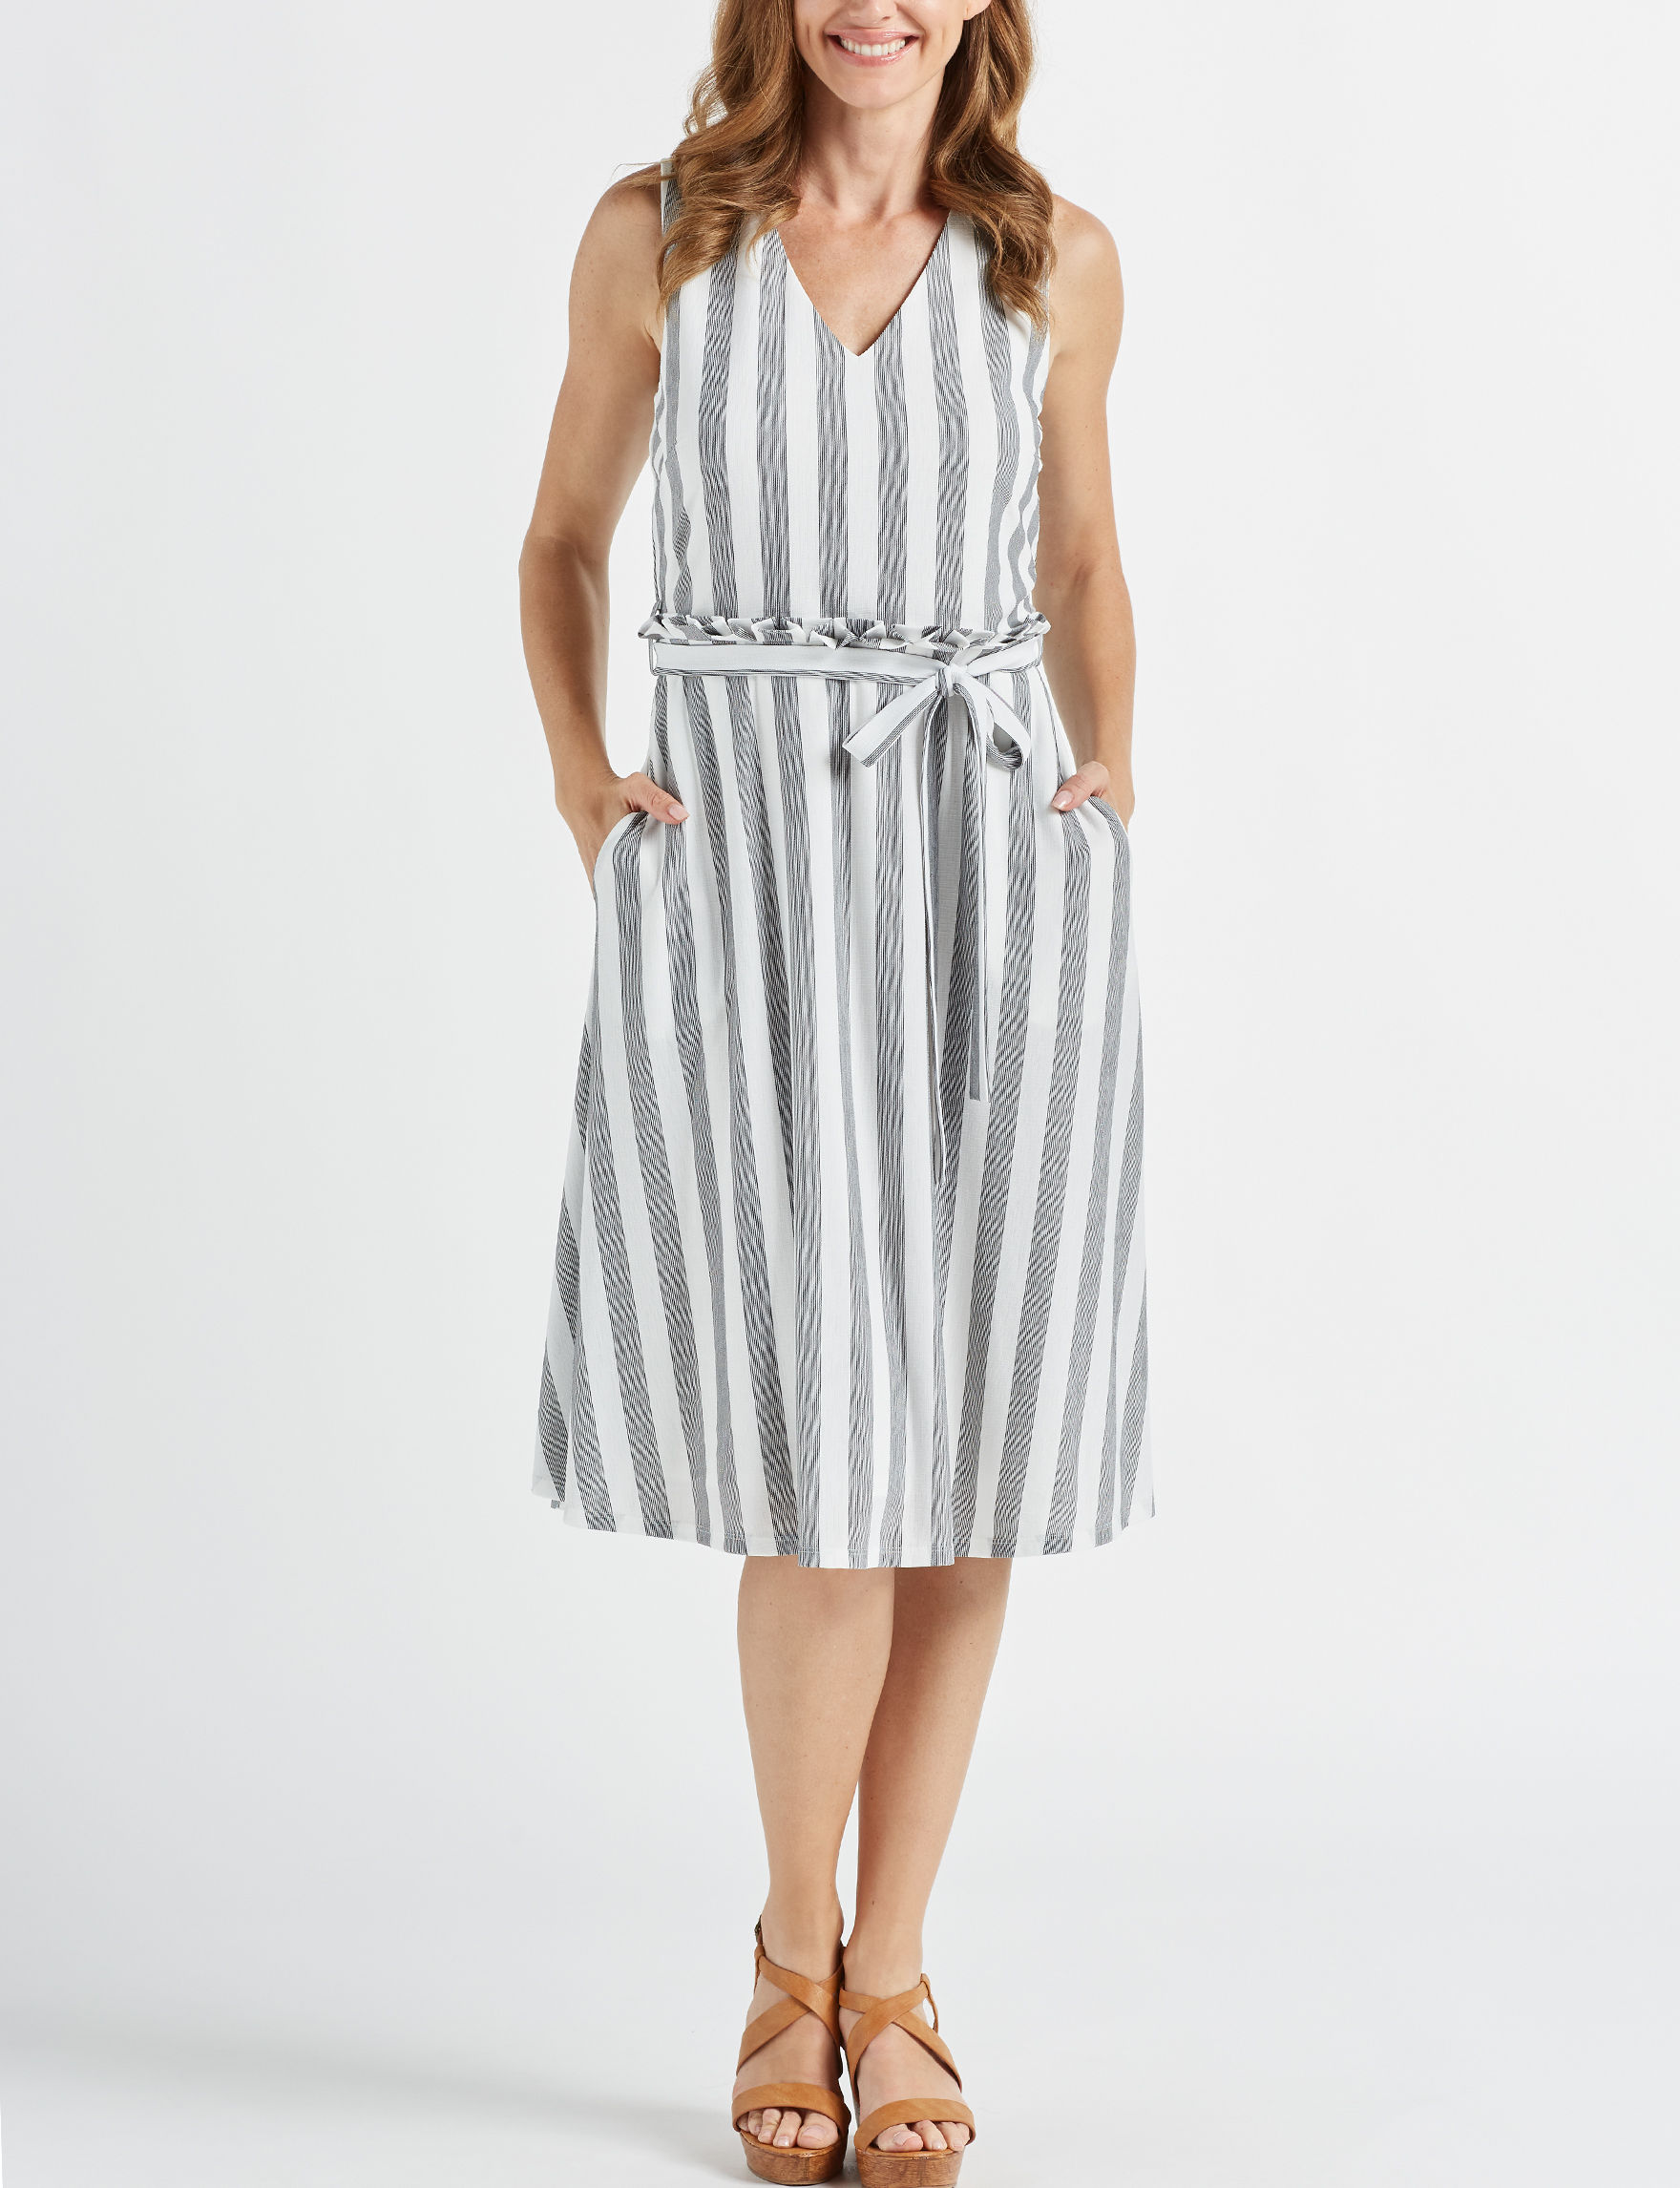 Beige by ECI White Stripe Everyday & Casual A-line Dresses